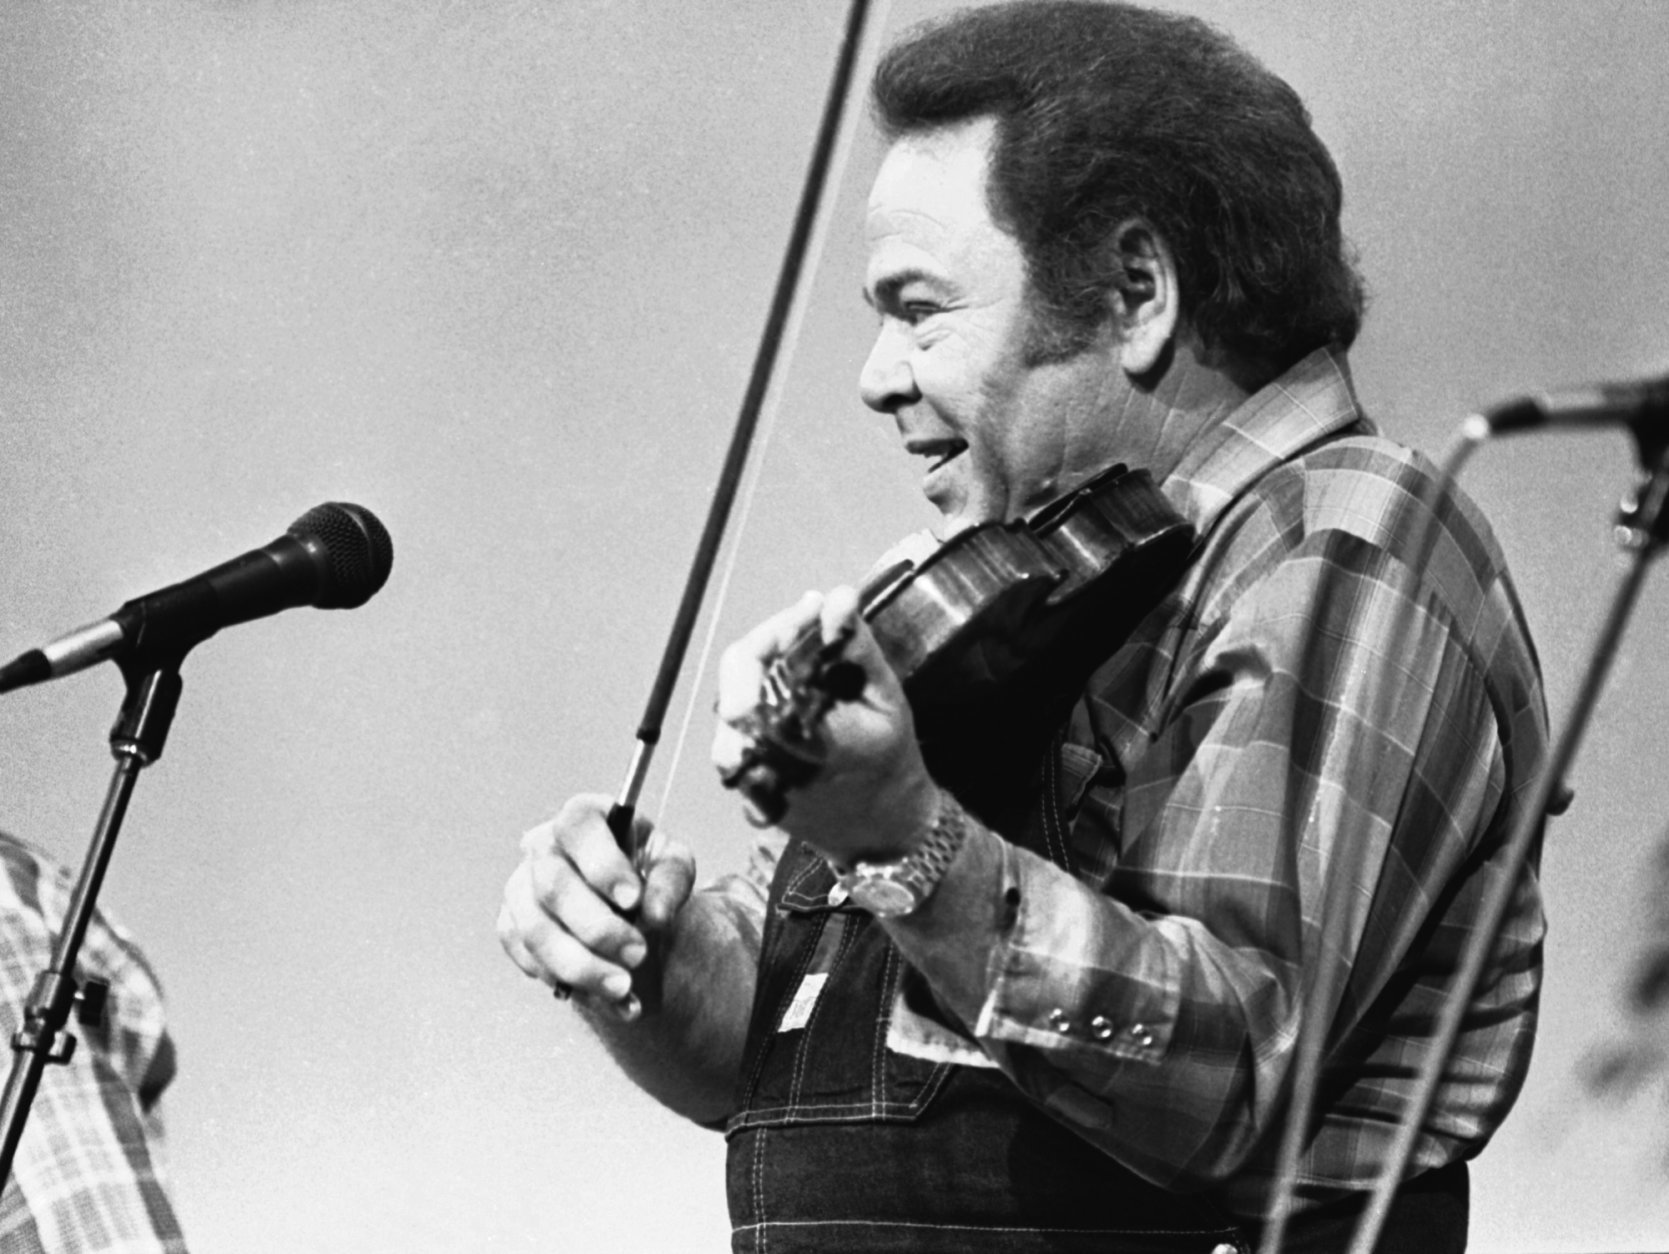 """FILE - In this June 27, 1983, file photo, entertainer Roy Clark plays the fiddle during a taping of the syndicated television show """"Hee Haw,"""" in Nashville, Tenn. Clark, the guitar virtuoso and singer who headlined the cornpone TV show """"Hee Haw"""" for nearly a quarter century, died Thursday, Nov. 15, 2018, due to complications from pneumonia at home in Tulsa, Okla., publicist Jeremy Westby said. He was 85.   (AP Photo/Mark Humphrey<File)_"""